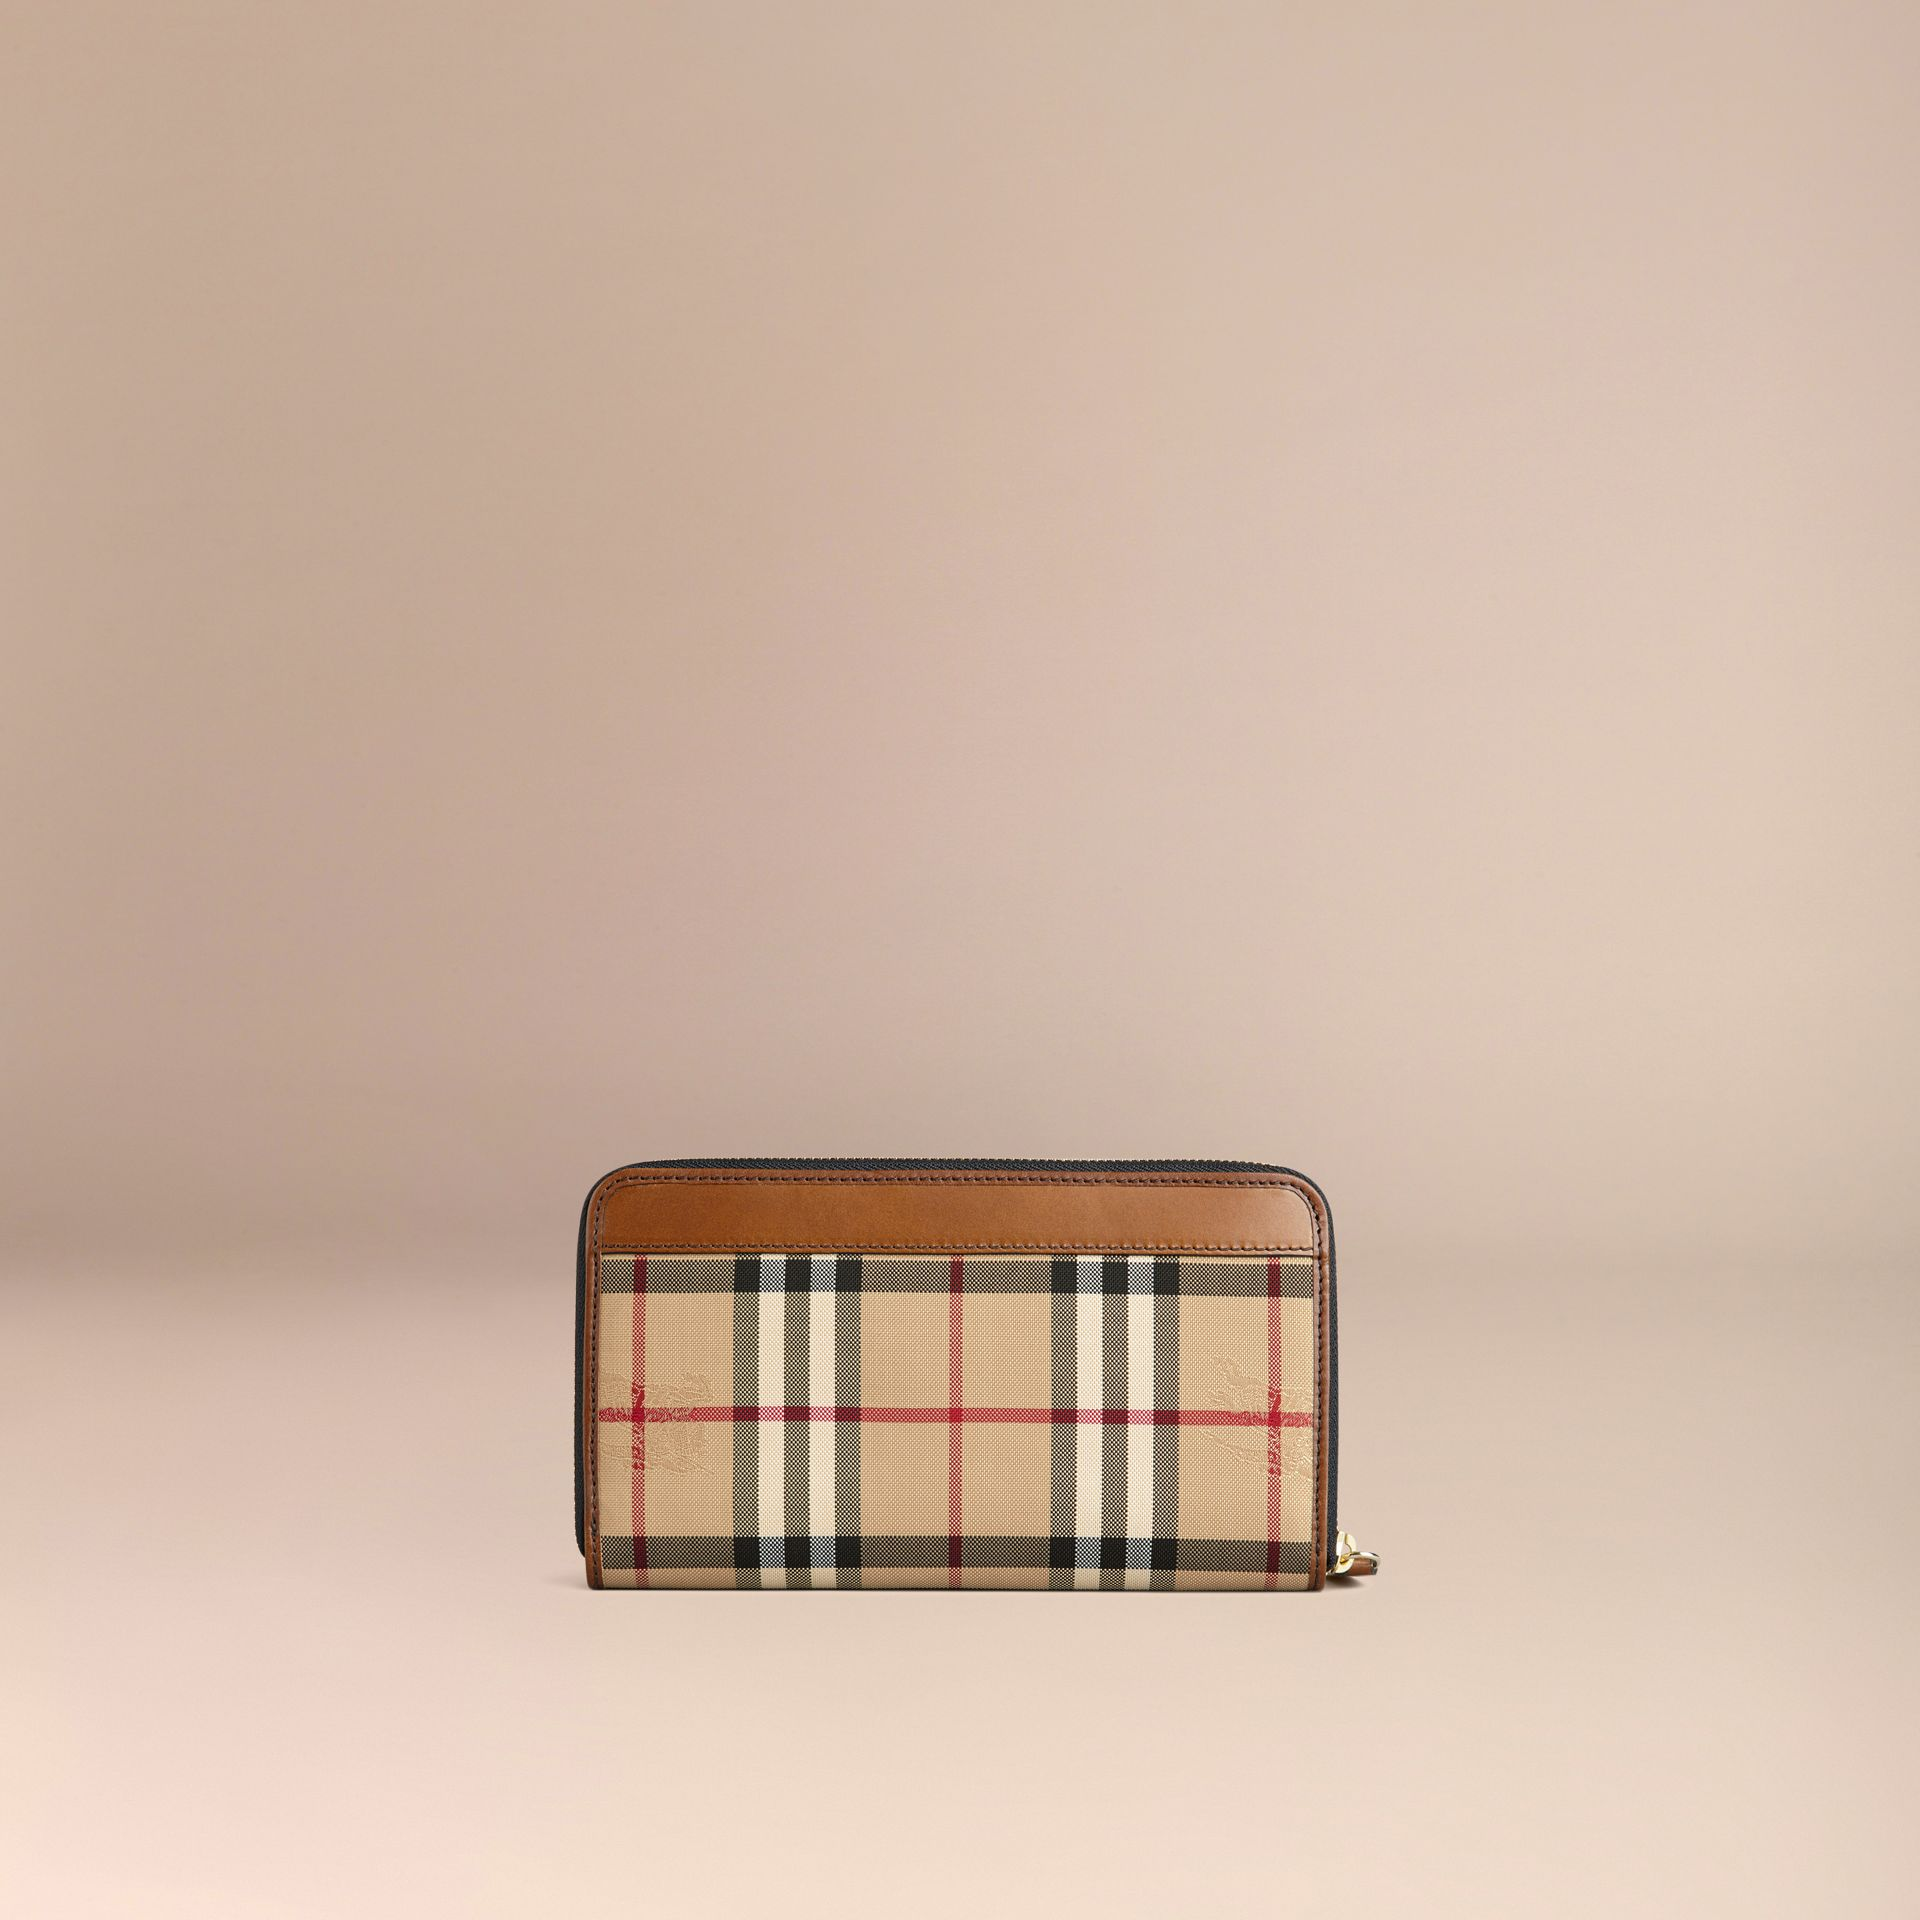 Horseferry Check Ziparound Wallet in Tan - Men | Burberry Canada - gallery image 3